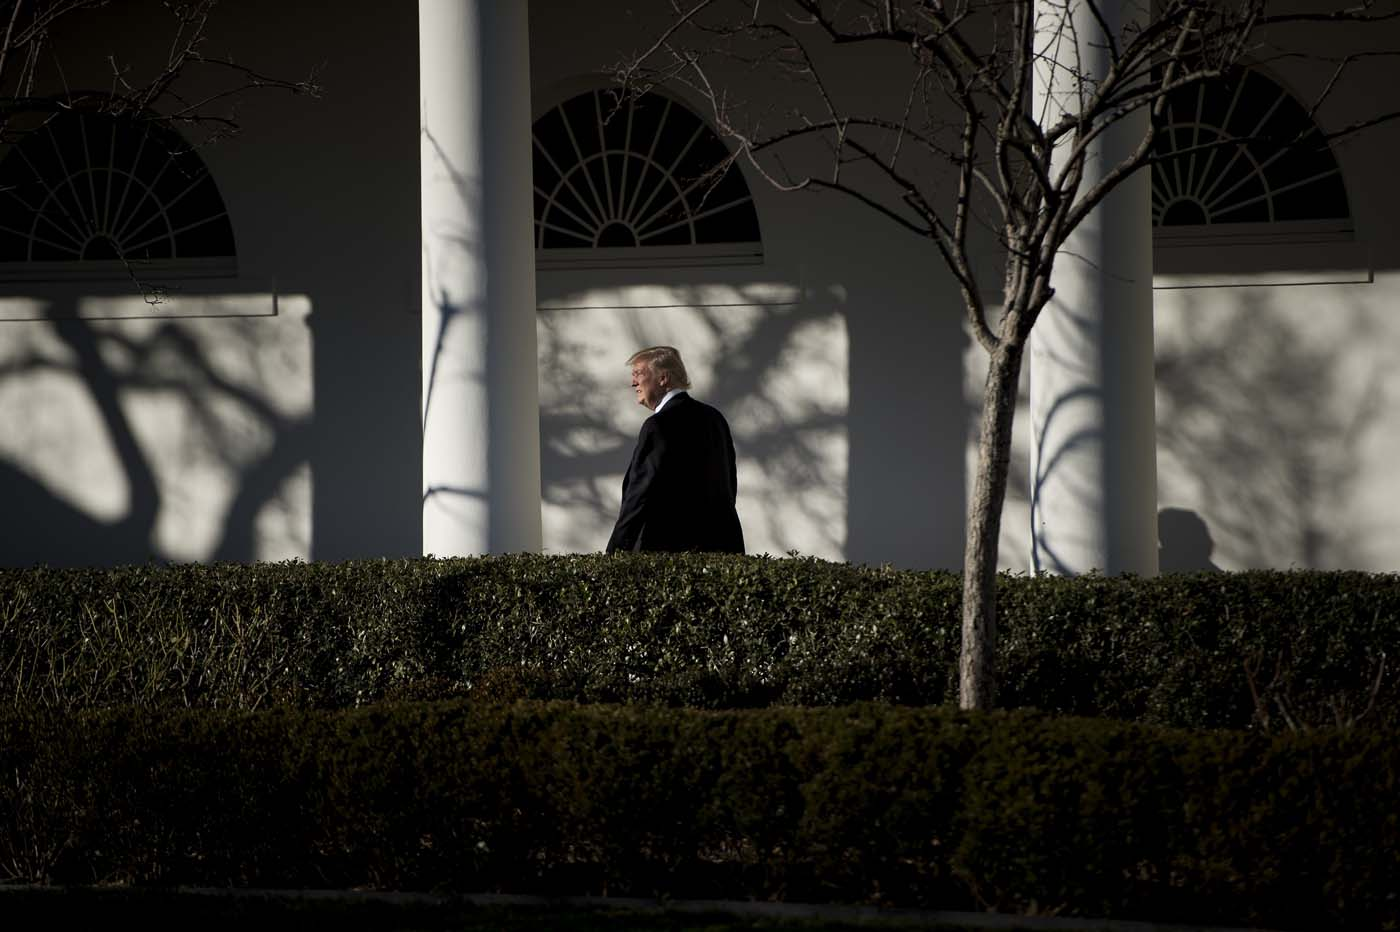 US President Donald Trump walks from the Residence to the West Wing of the White House after returning from Philadelphia on January 26, 2017 in Washington, DC. / AFP PHOTO / Brendan Smialowski